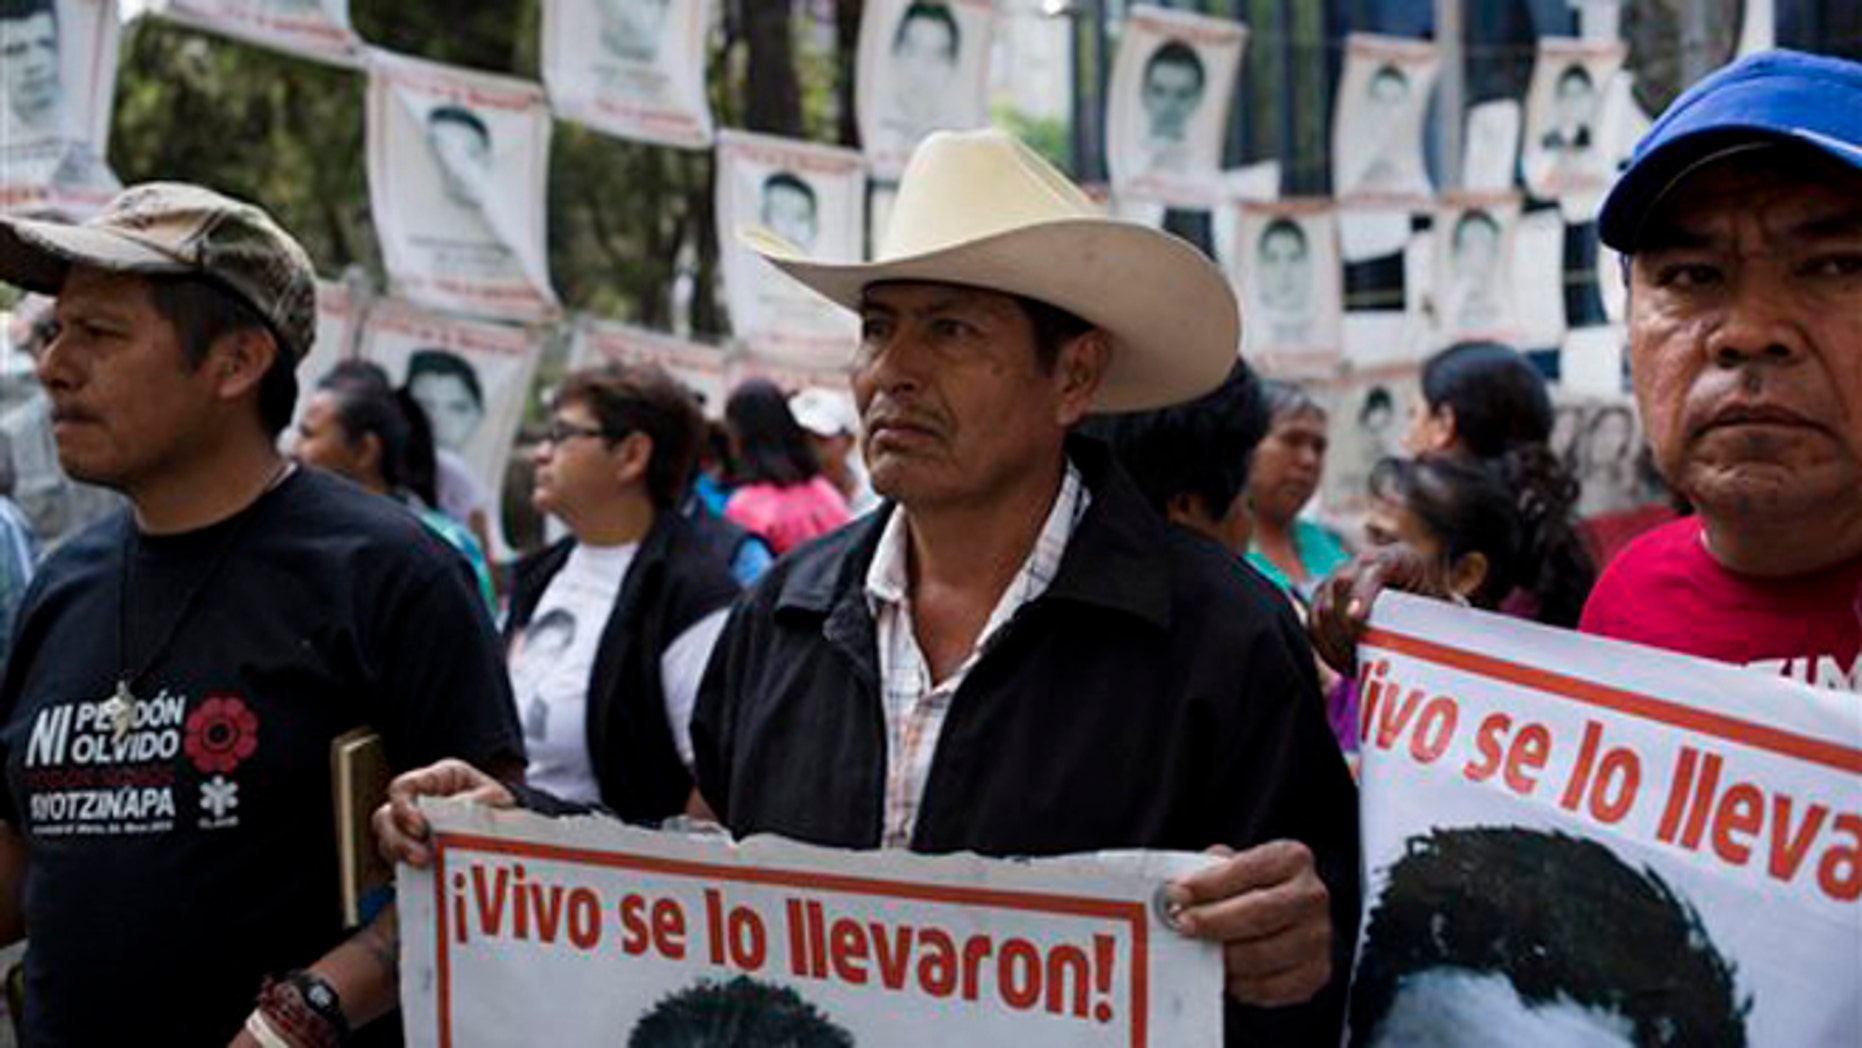 """Relatives of 43 missing students from the Isidro Burgos rural teachers' college hold pictures of their missing loved ones after meeting with  Attorney General Arely Gomez Gonzalez in Mexico City, Thursday, March 17, 2016. His sign reads in Spanish: """"They took them alive!."""" In September of 2014, several students and bystanders were killed and 43 students vanished in the city of Iguala, allegedly taken by police and then handed over to a criminal gang who burned their bodies in a garbage dump, according to a federal investigation. Families of the missing and independent investigators cast doubts on the official version. (AP Photo/Eduardo Verdugo)"""